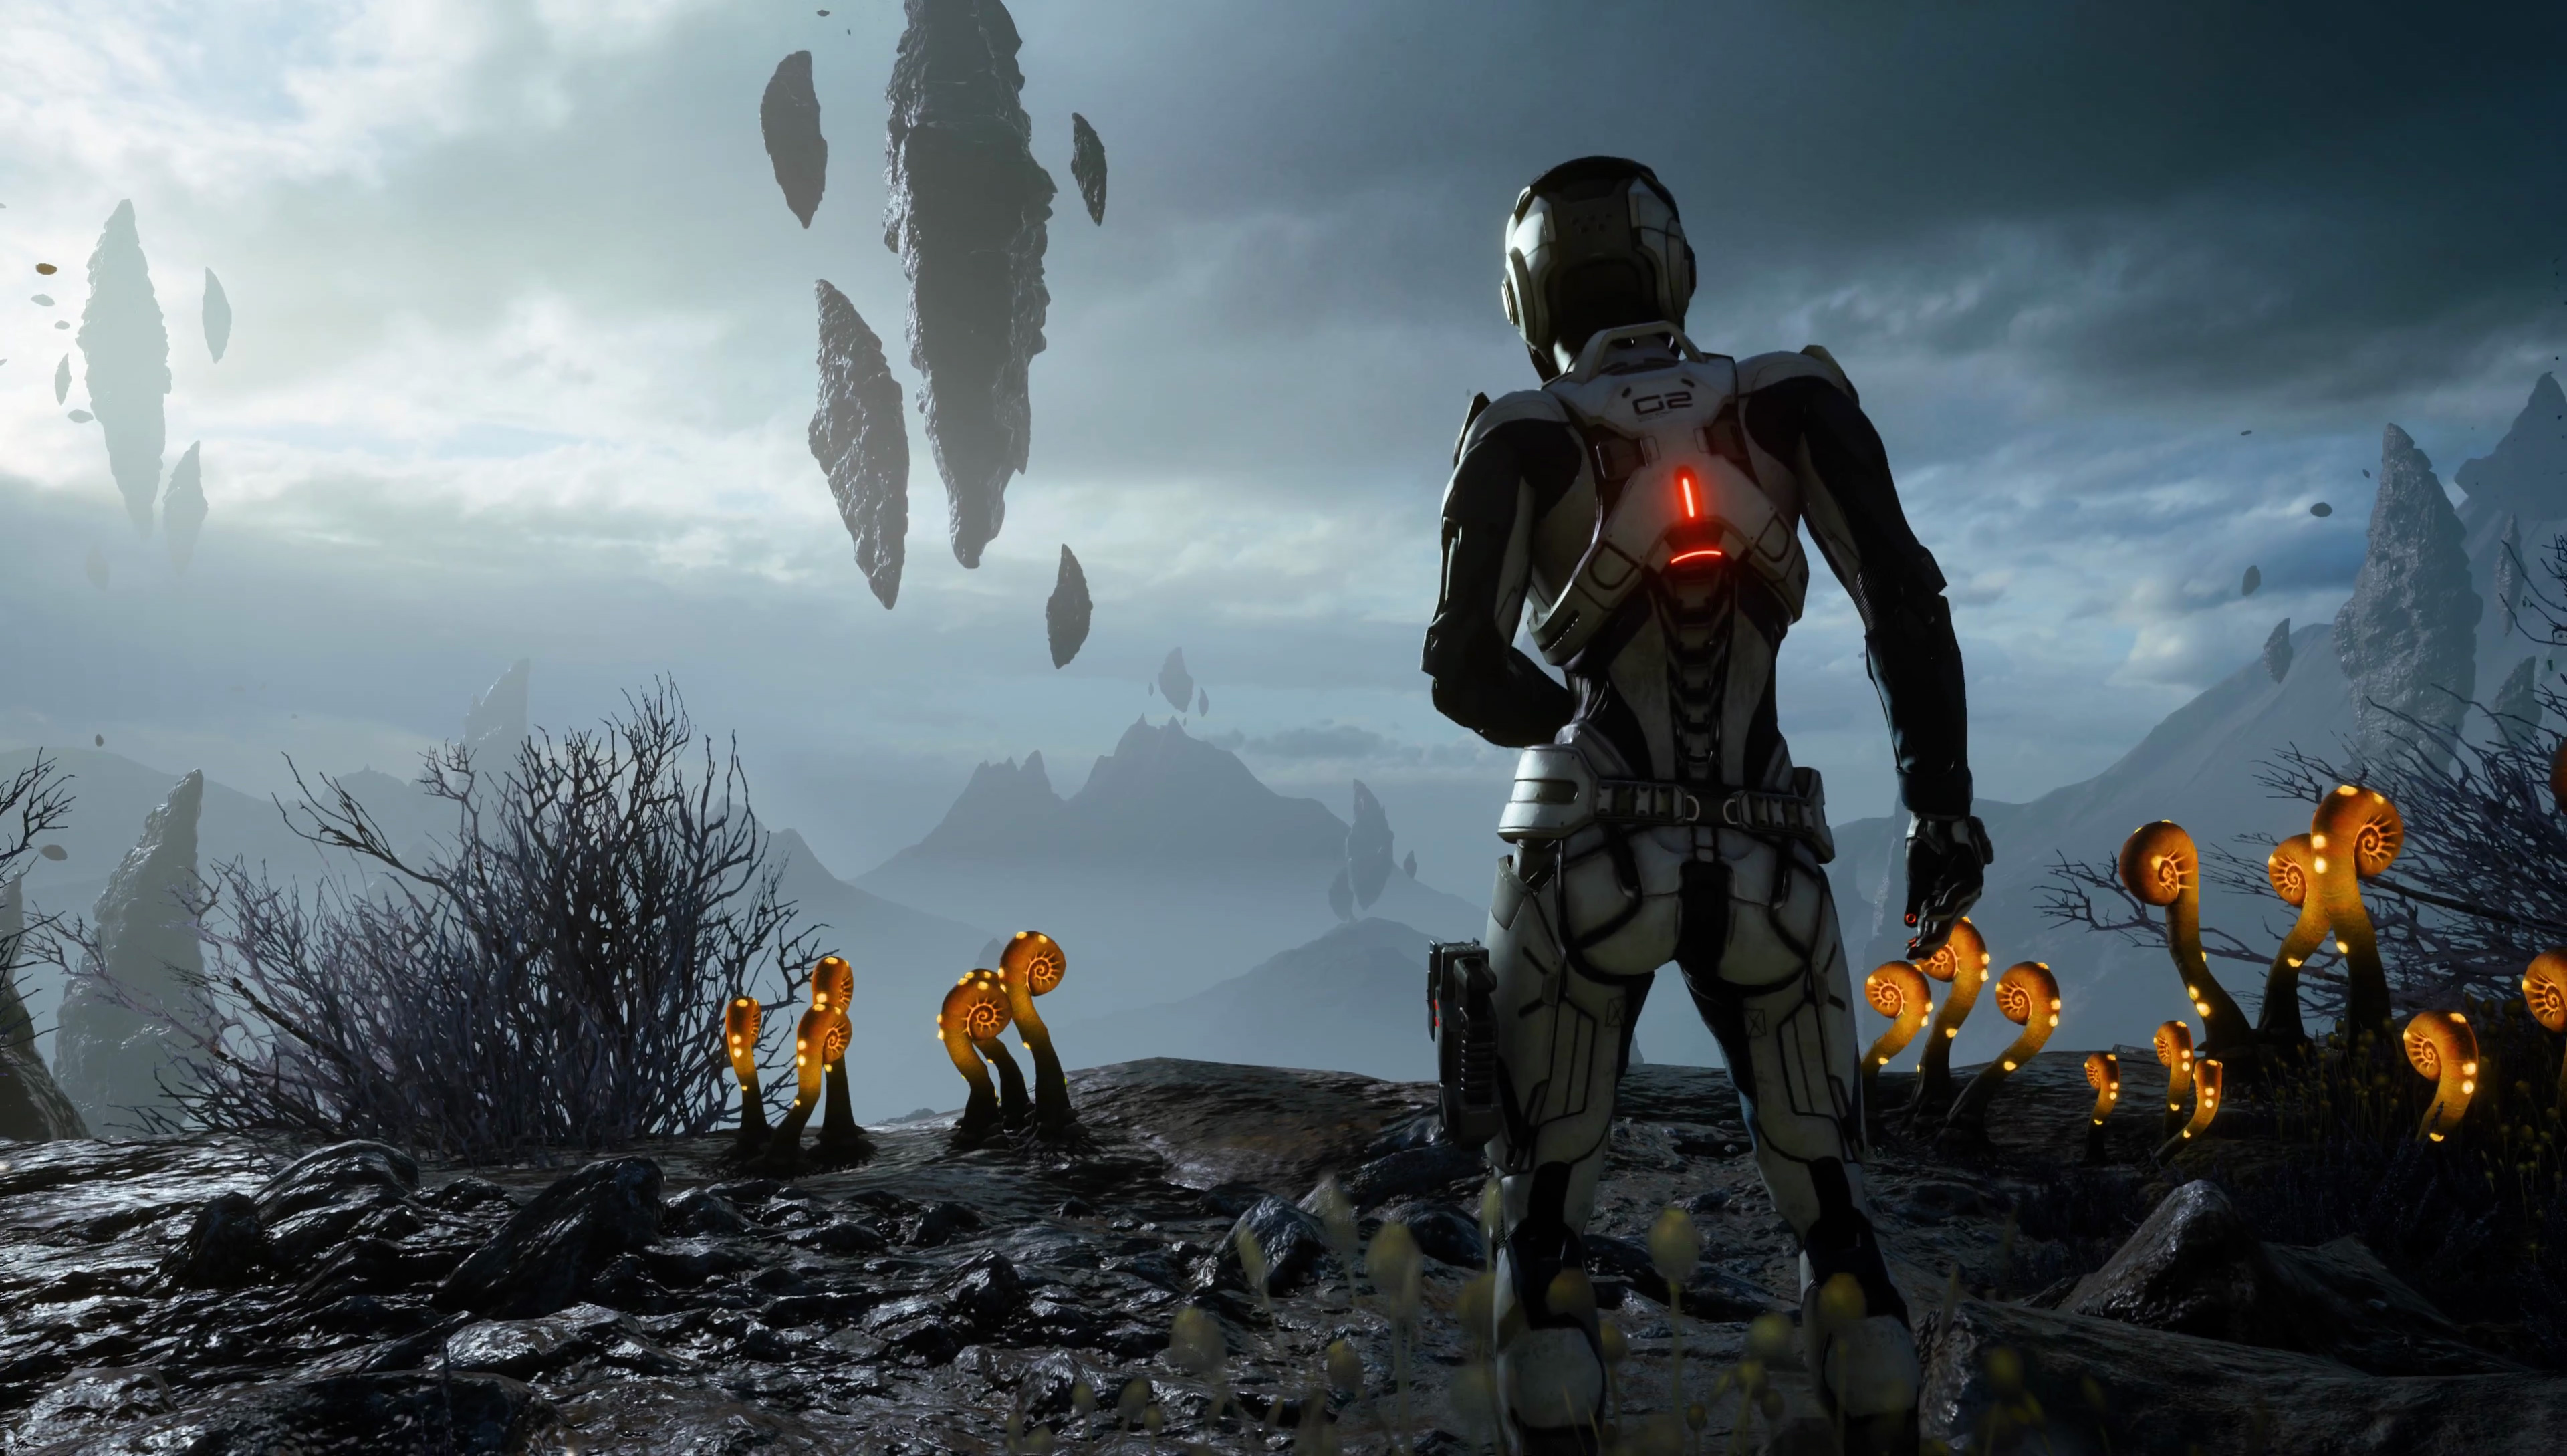 Mass Effect Andromeda final mission